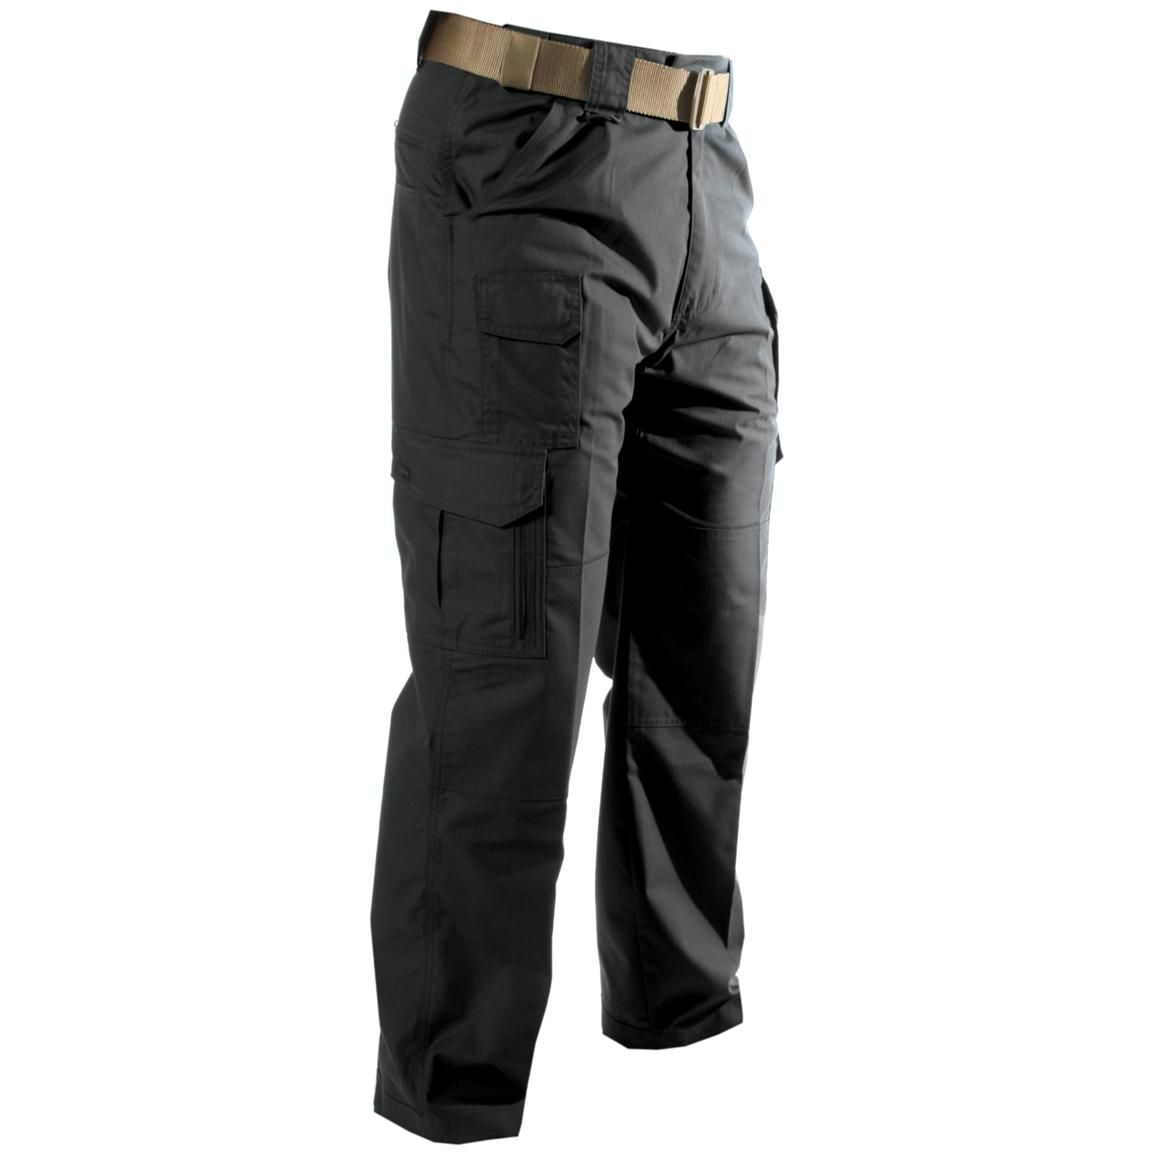 Mens blackhawk warrior wear lightweight tactical pants black 45 mens blackhawk warrior wear lightweight tactical pants black 45 publicscrutiny Choice Image